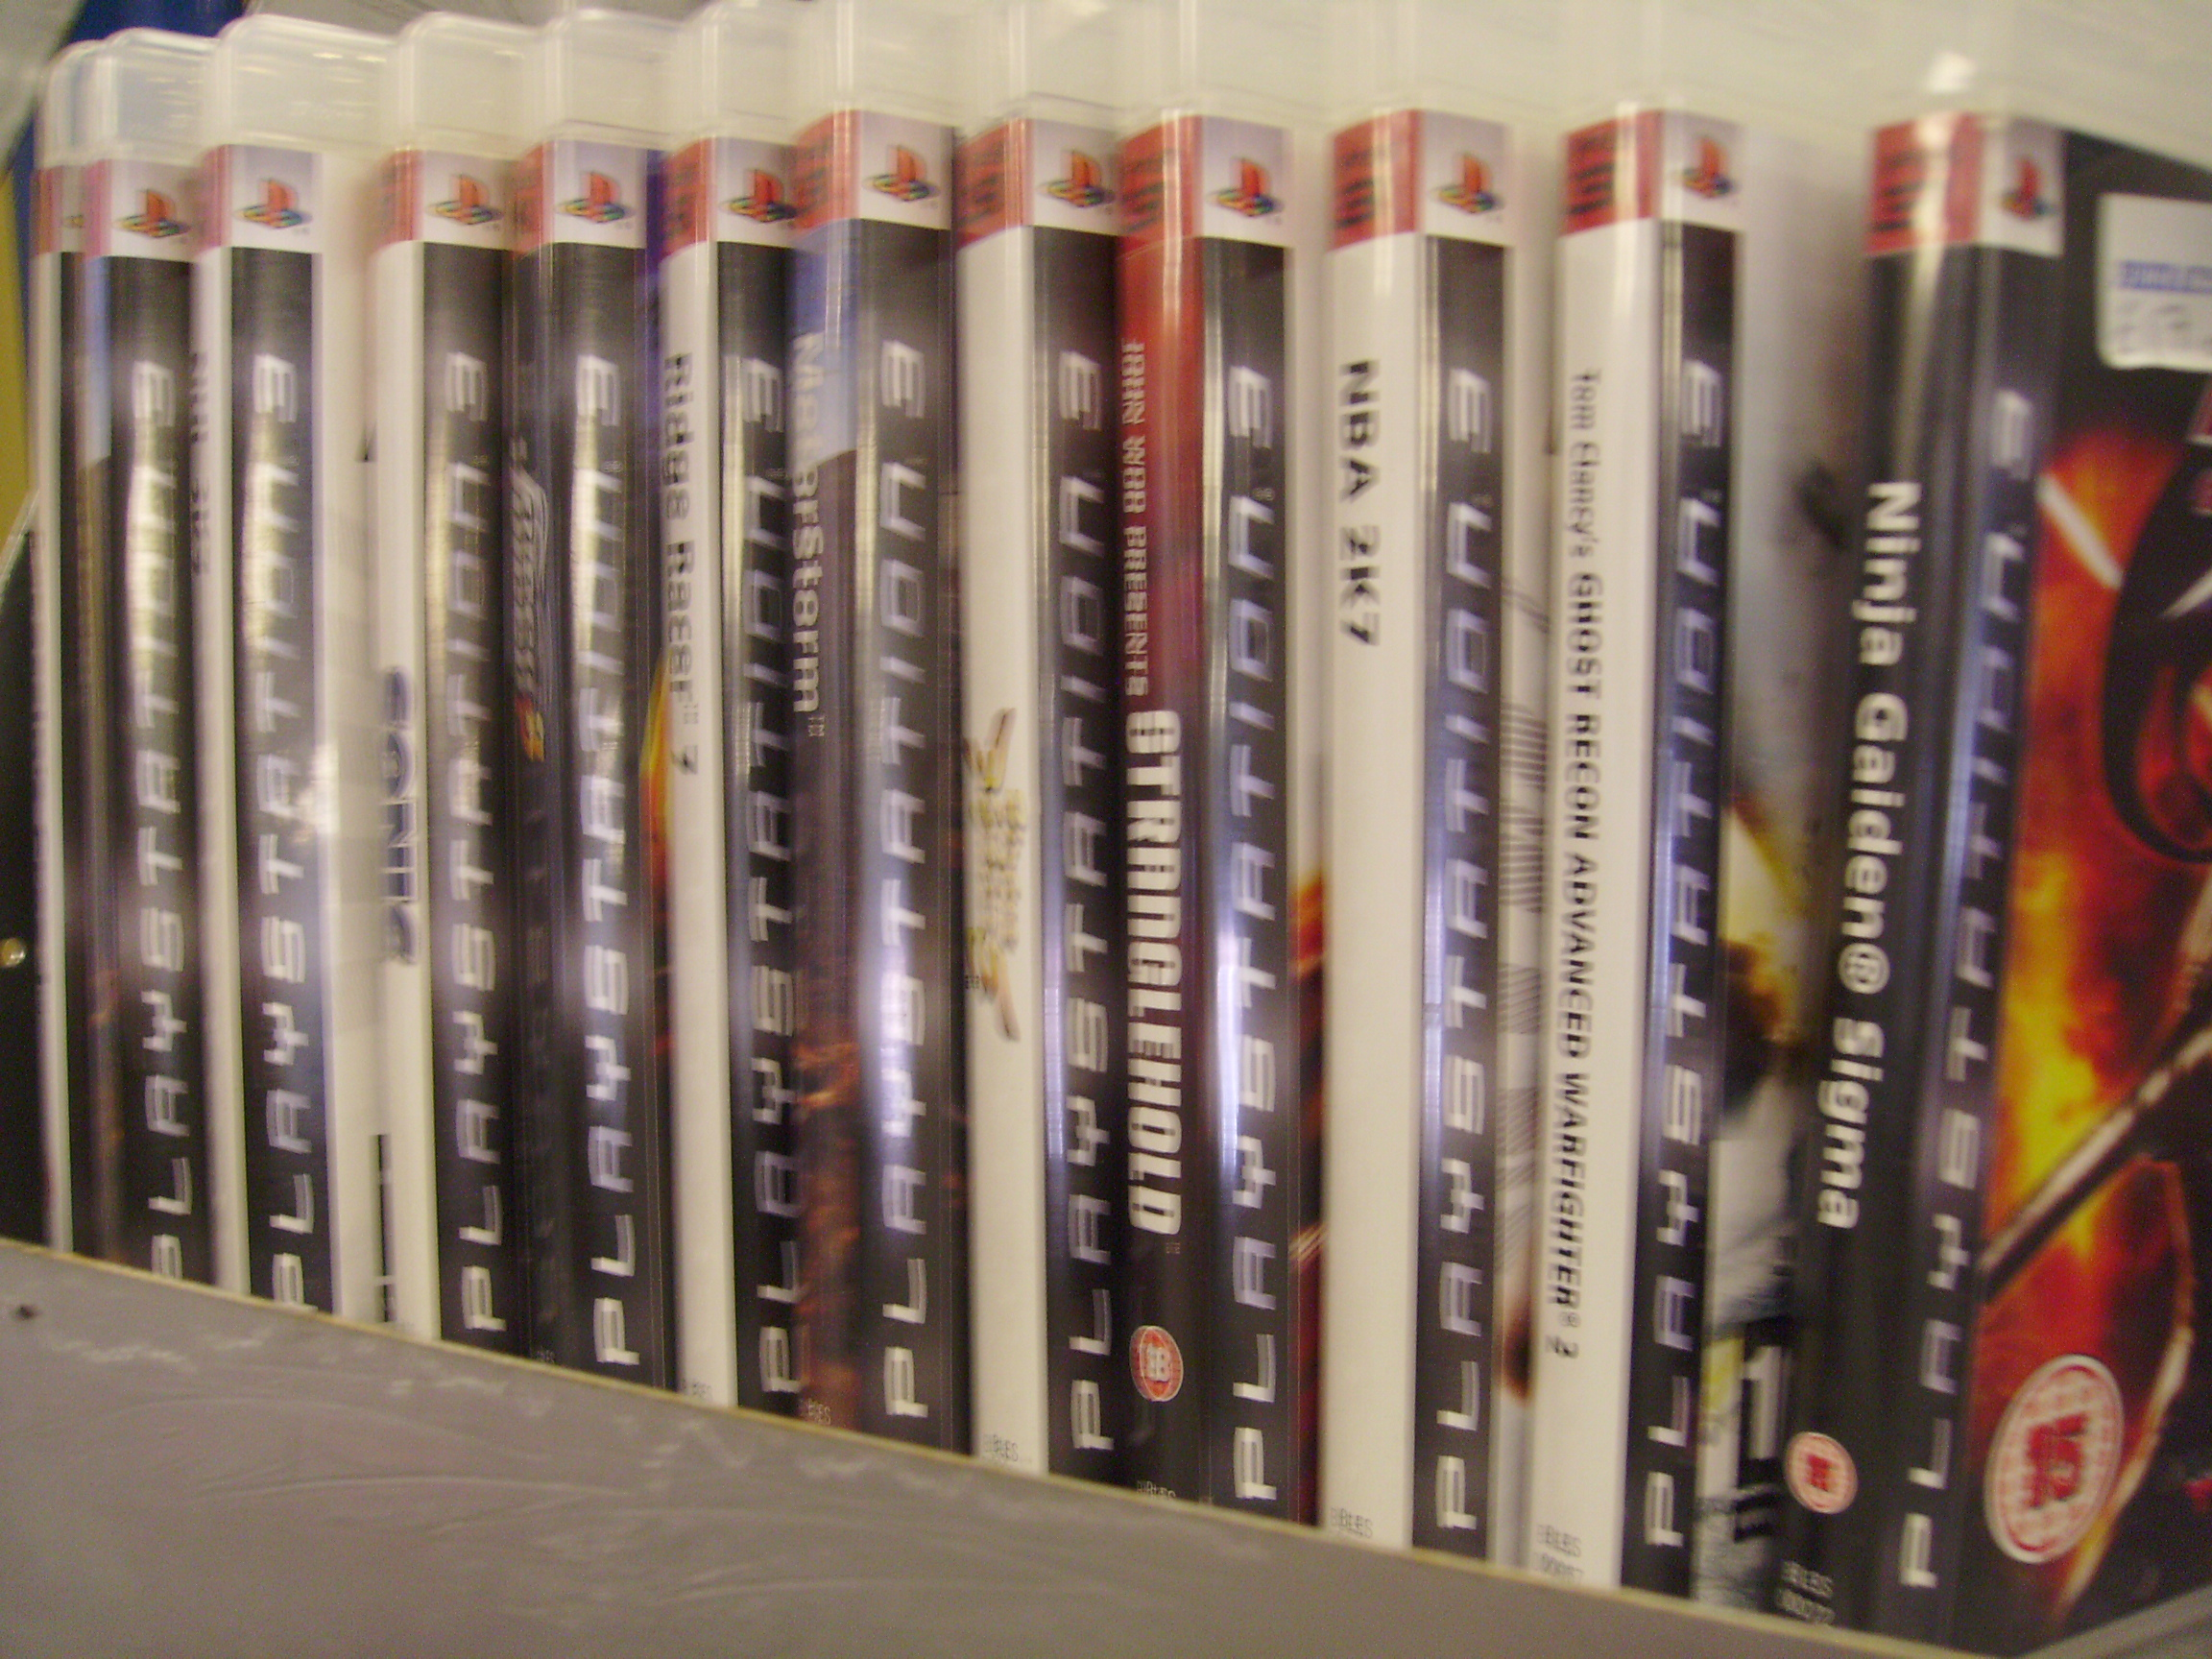 Playstation 3 Games - from £4